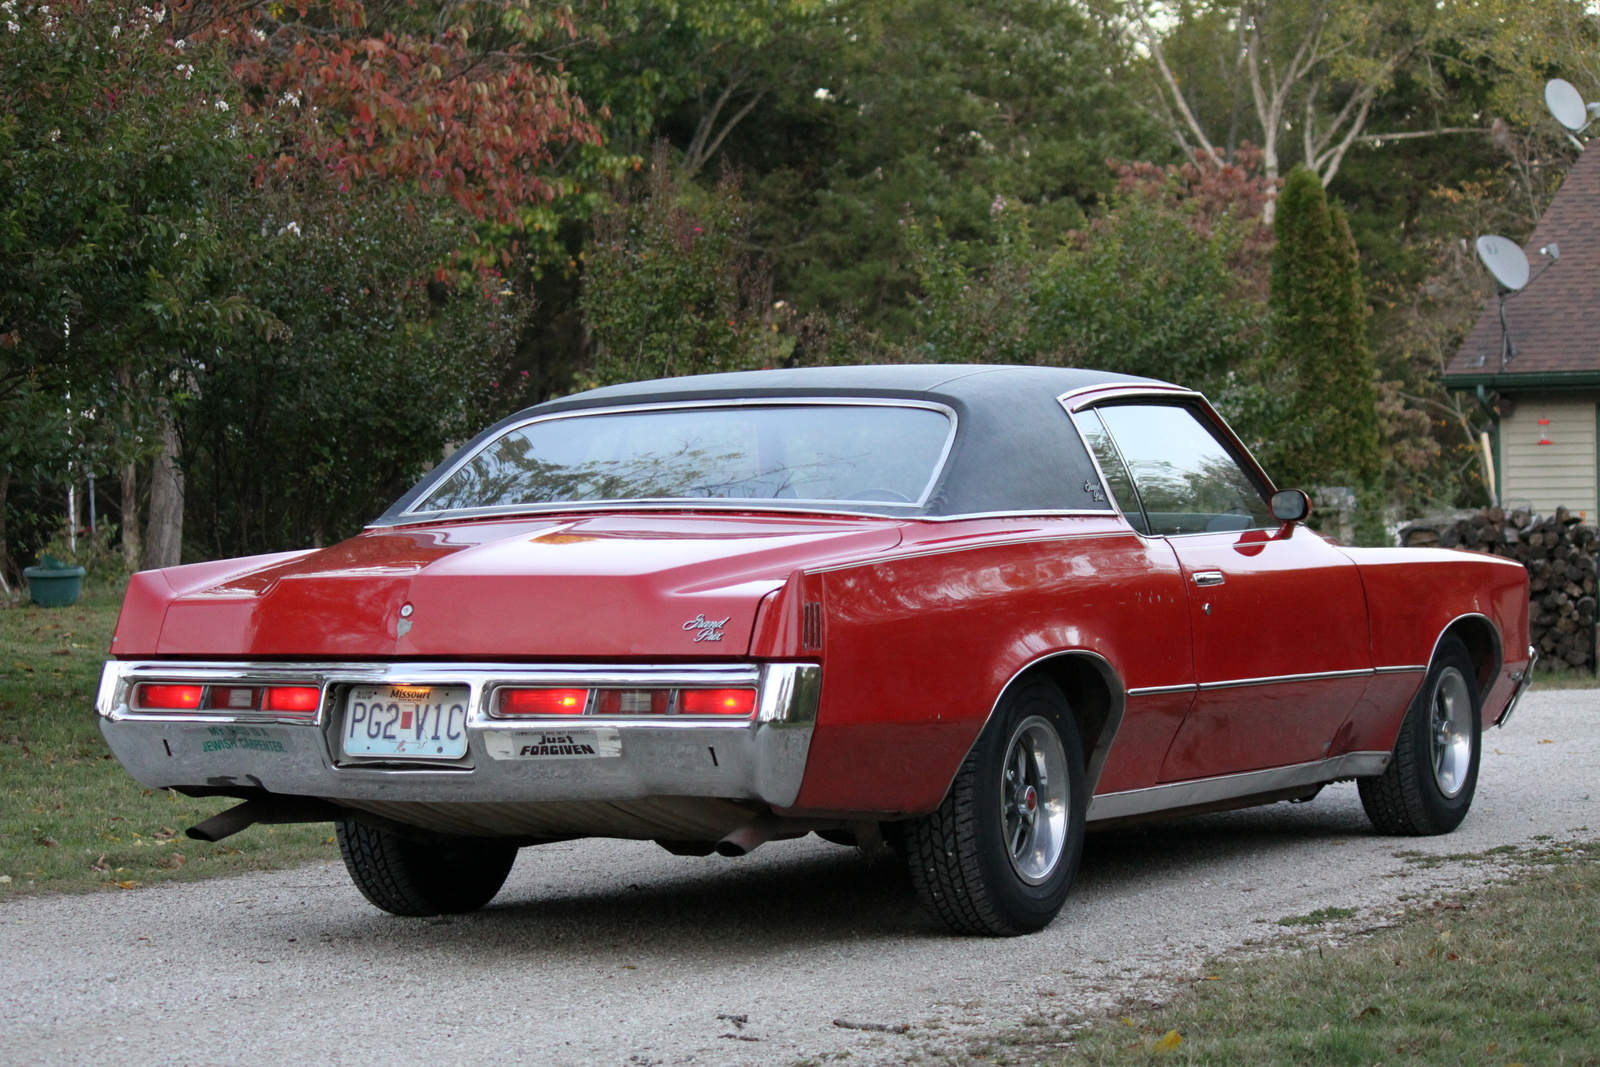 1972 Pontiac Grand Prix picture